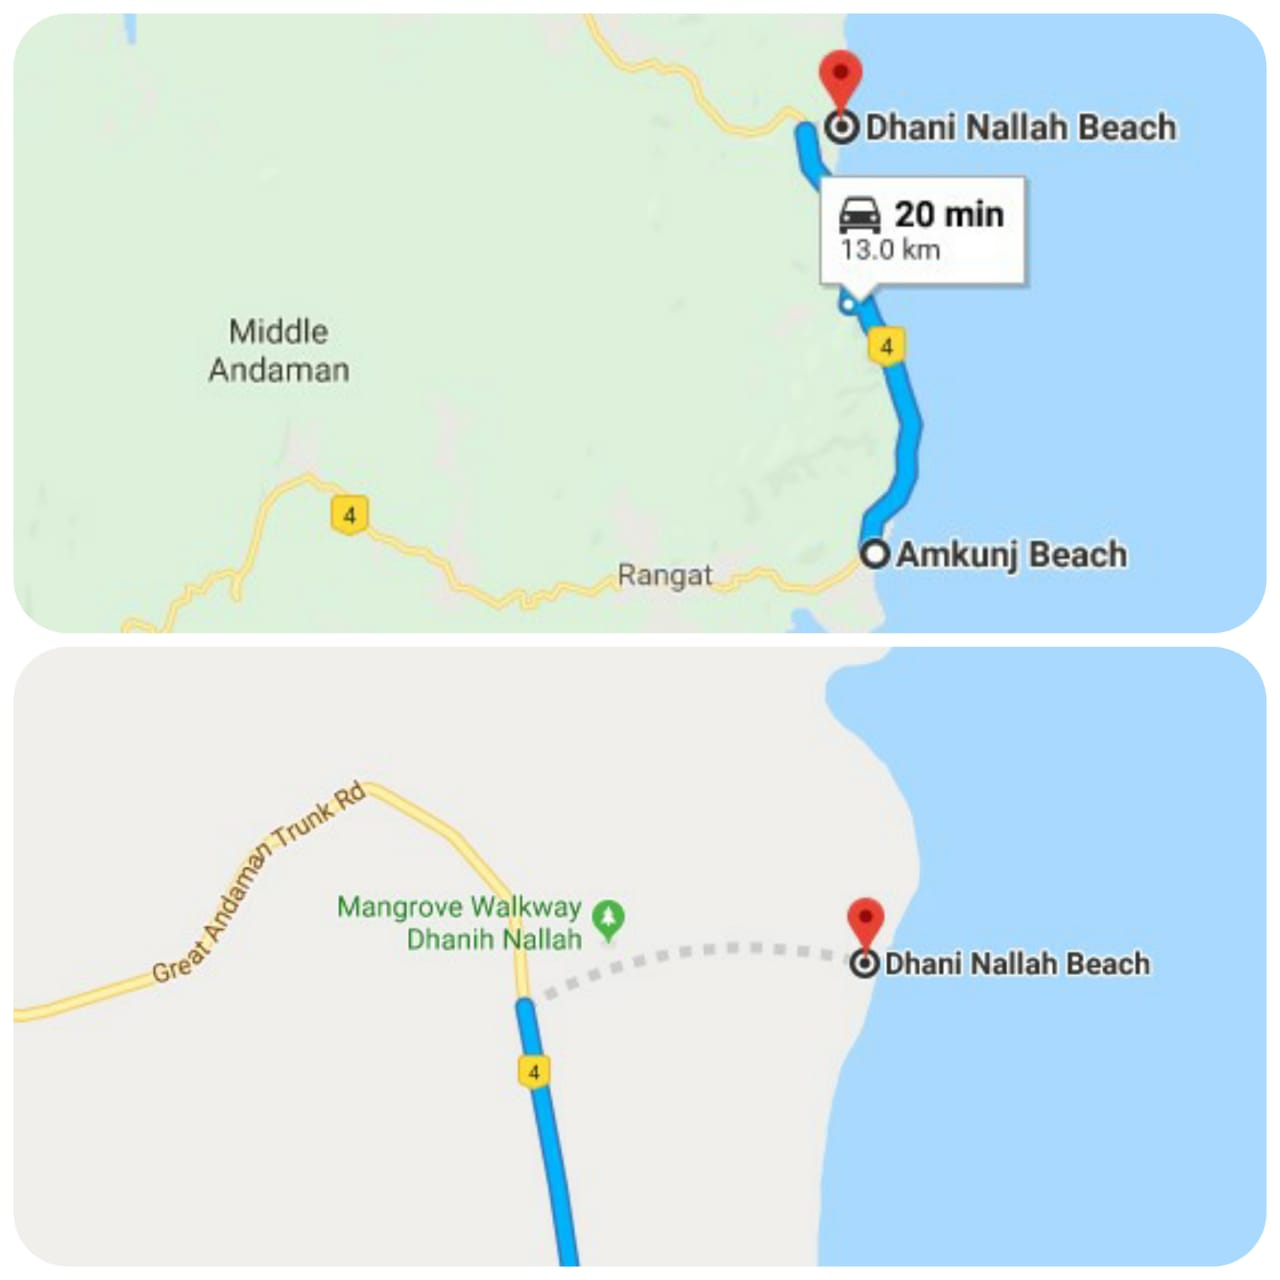 Amkunj to Dhani Nallah Beach and Dhani Nallah walkway to Beach